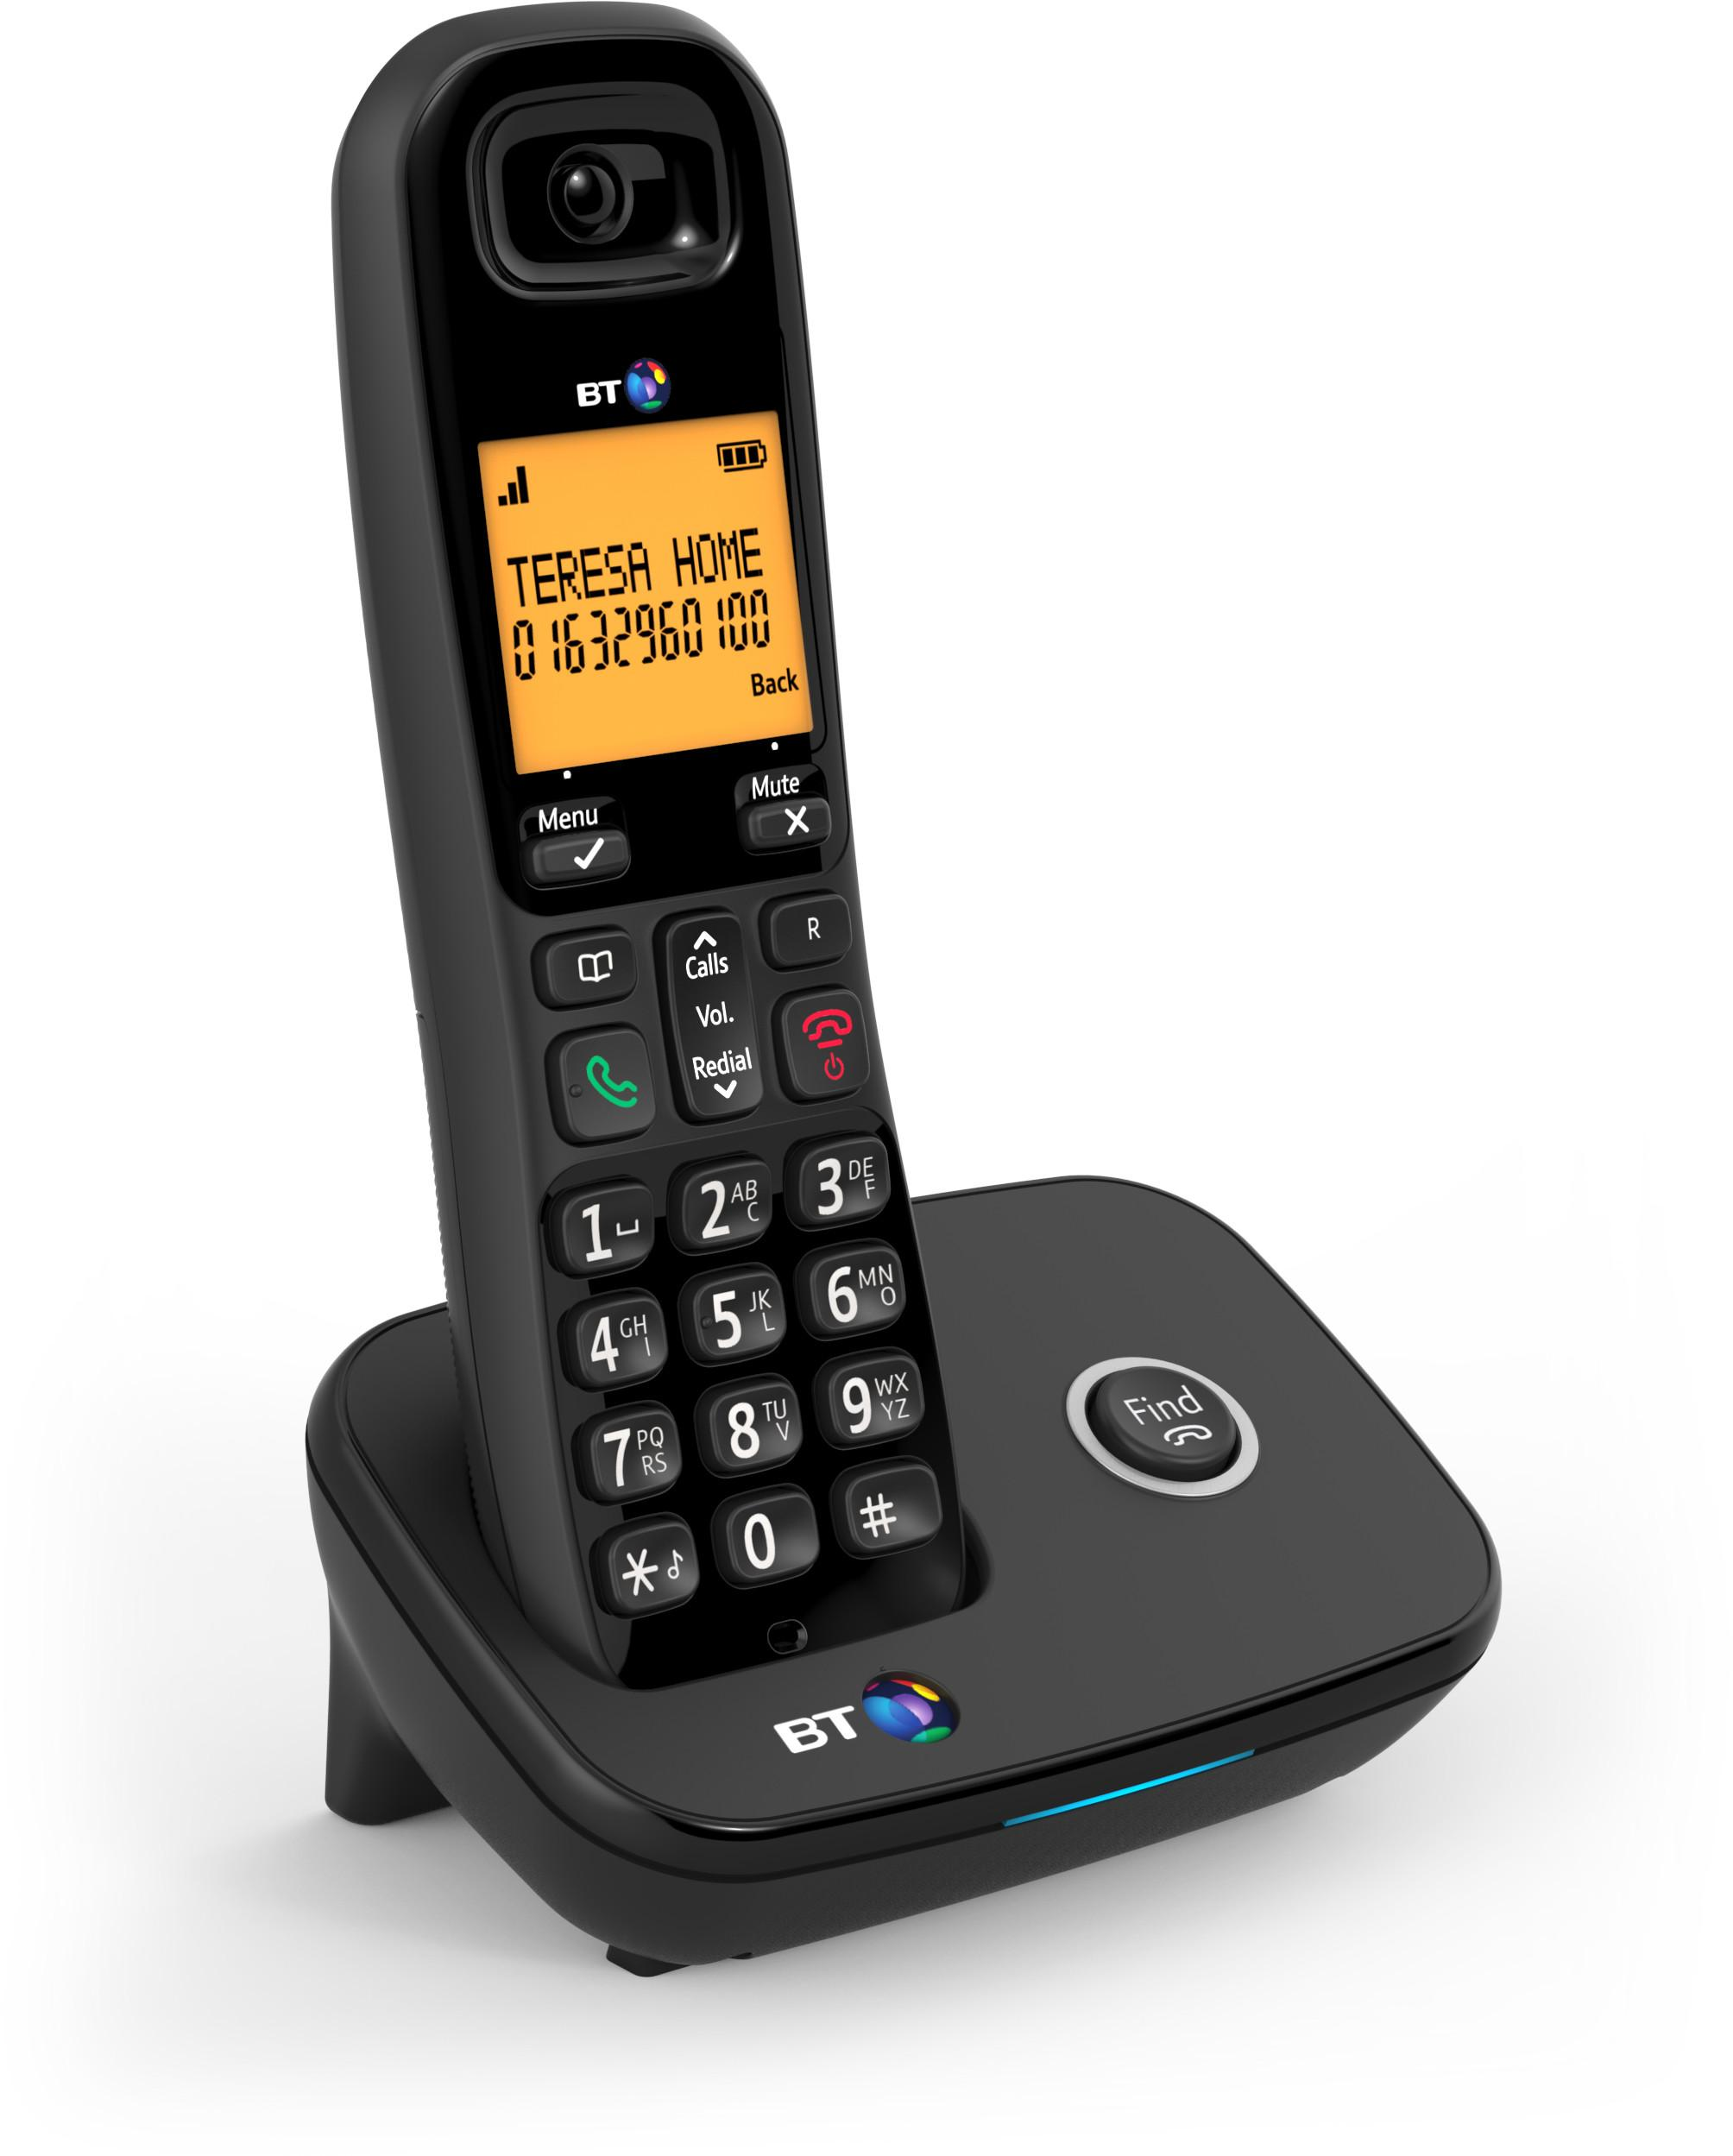 BT 1200 Nuisance Call Blocker Cordless Home Phone